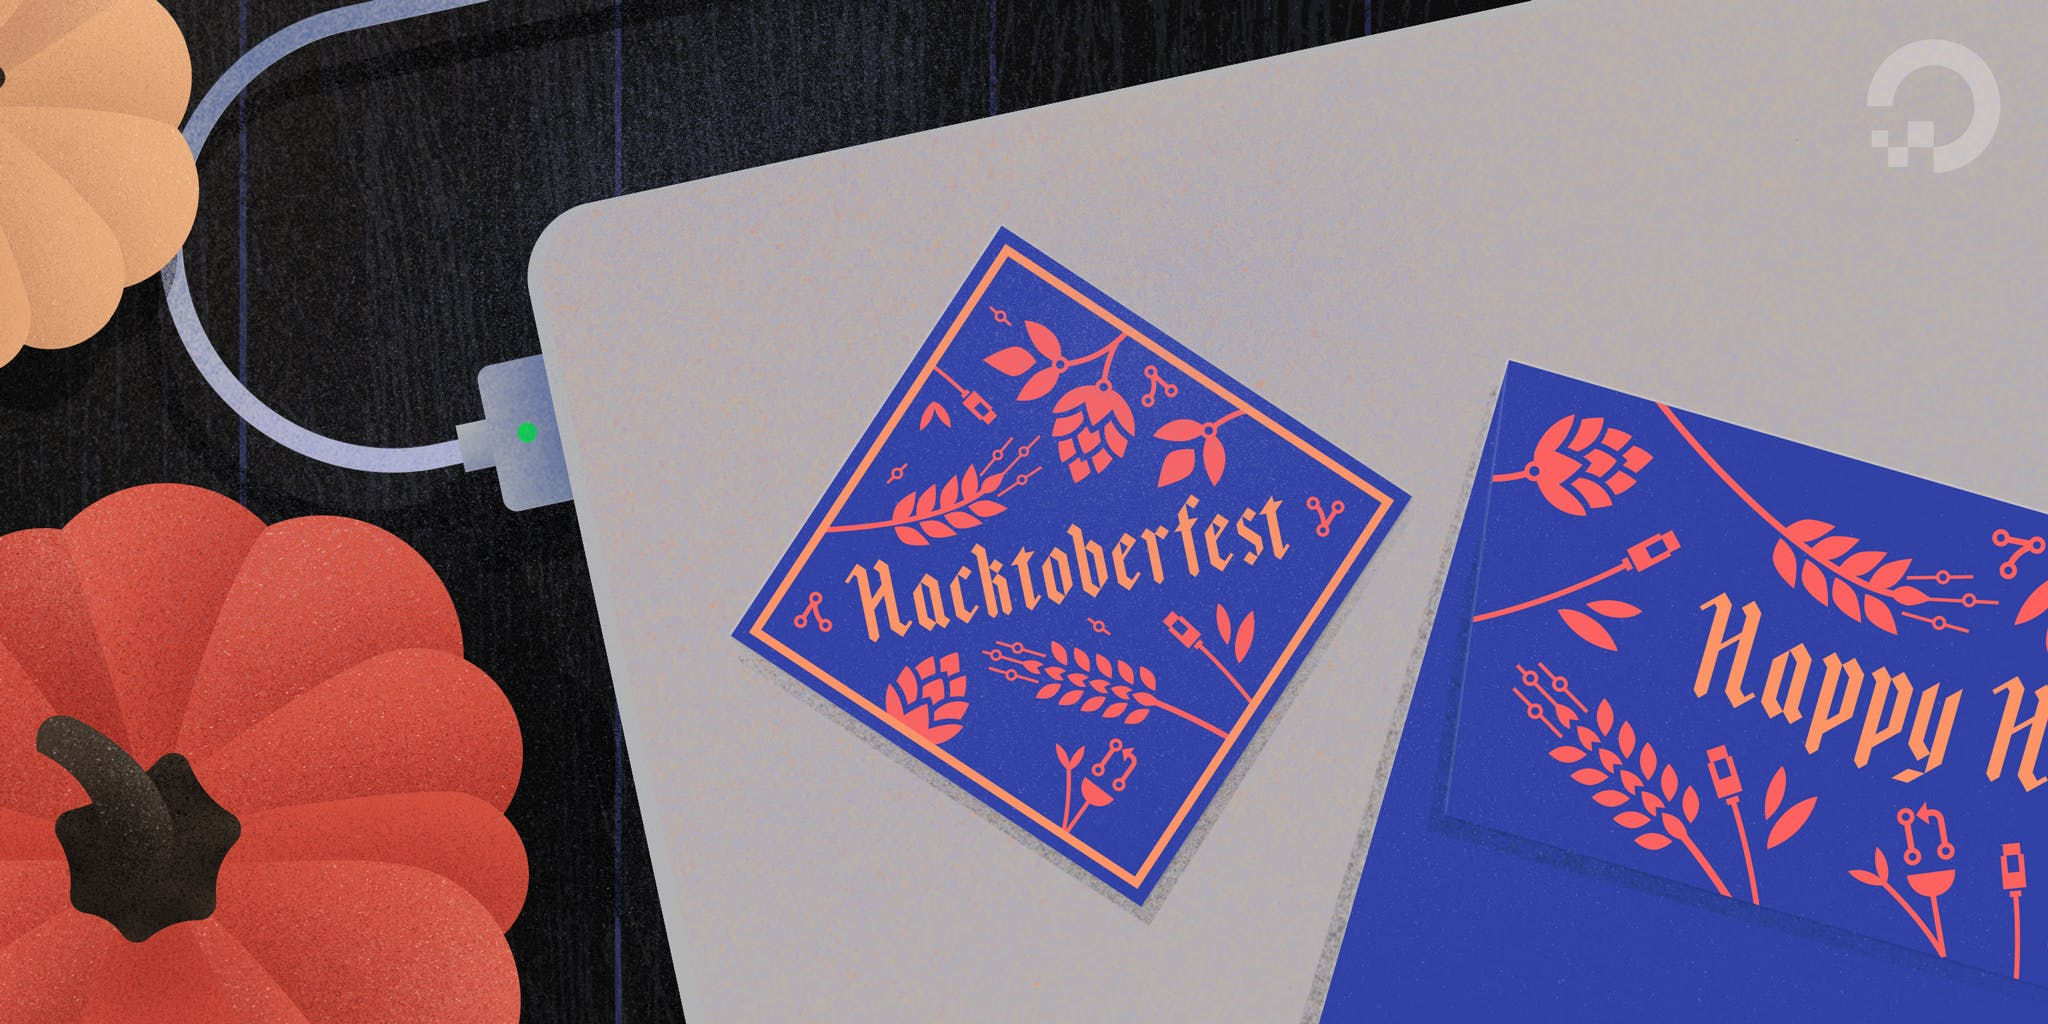 Hacktoberfest sticker on laptop illustration